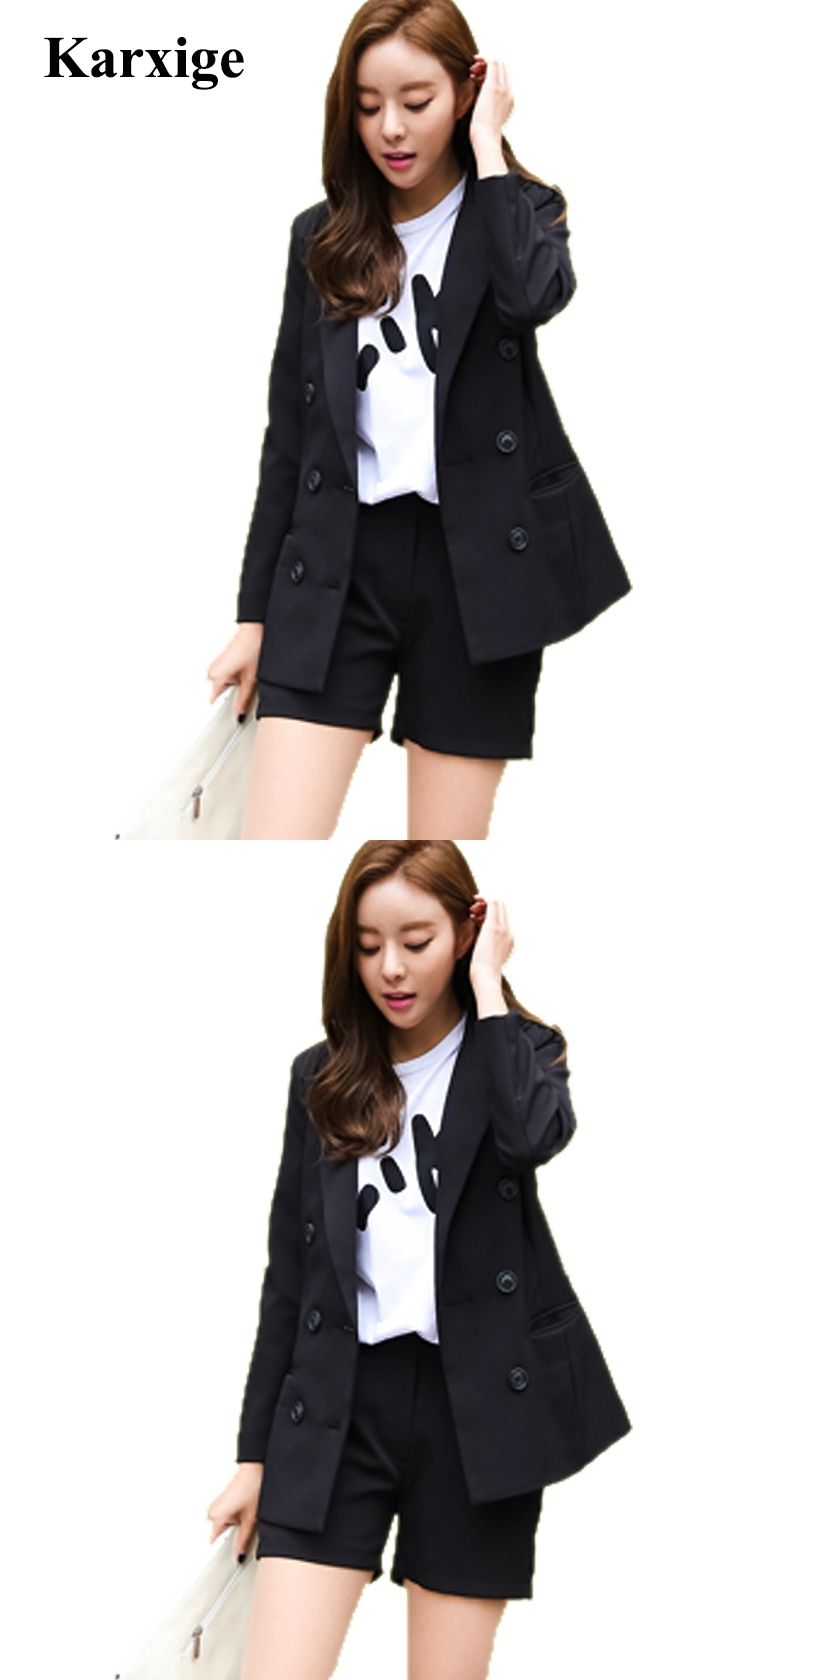 3c201c36bca 2017 Fashion Tide Simple Korean Version Double Breasted Buckle Two Sets  Slim Shorts pant jacket Women Suit sweet lady office